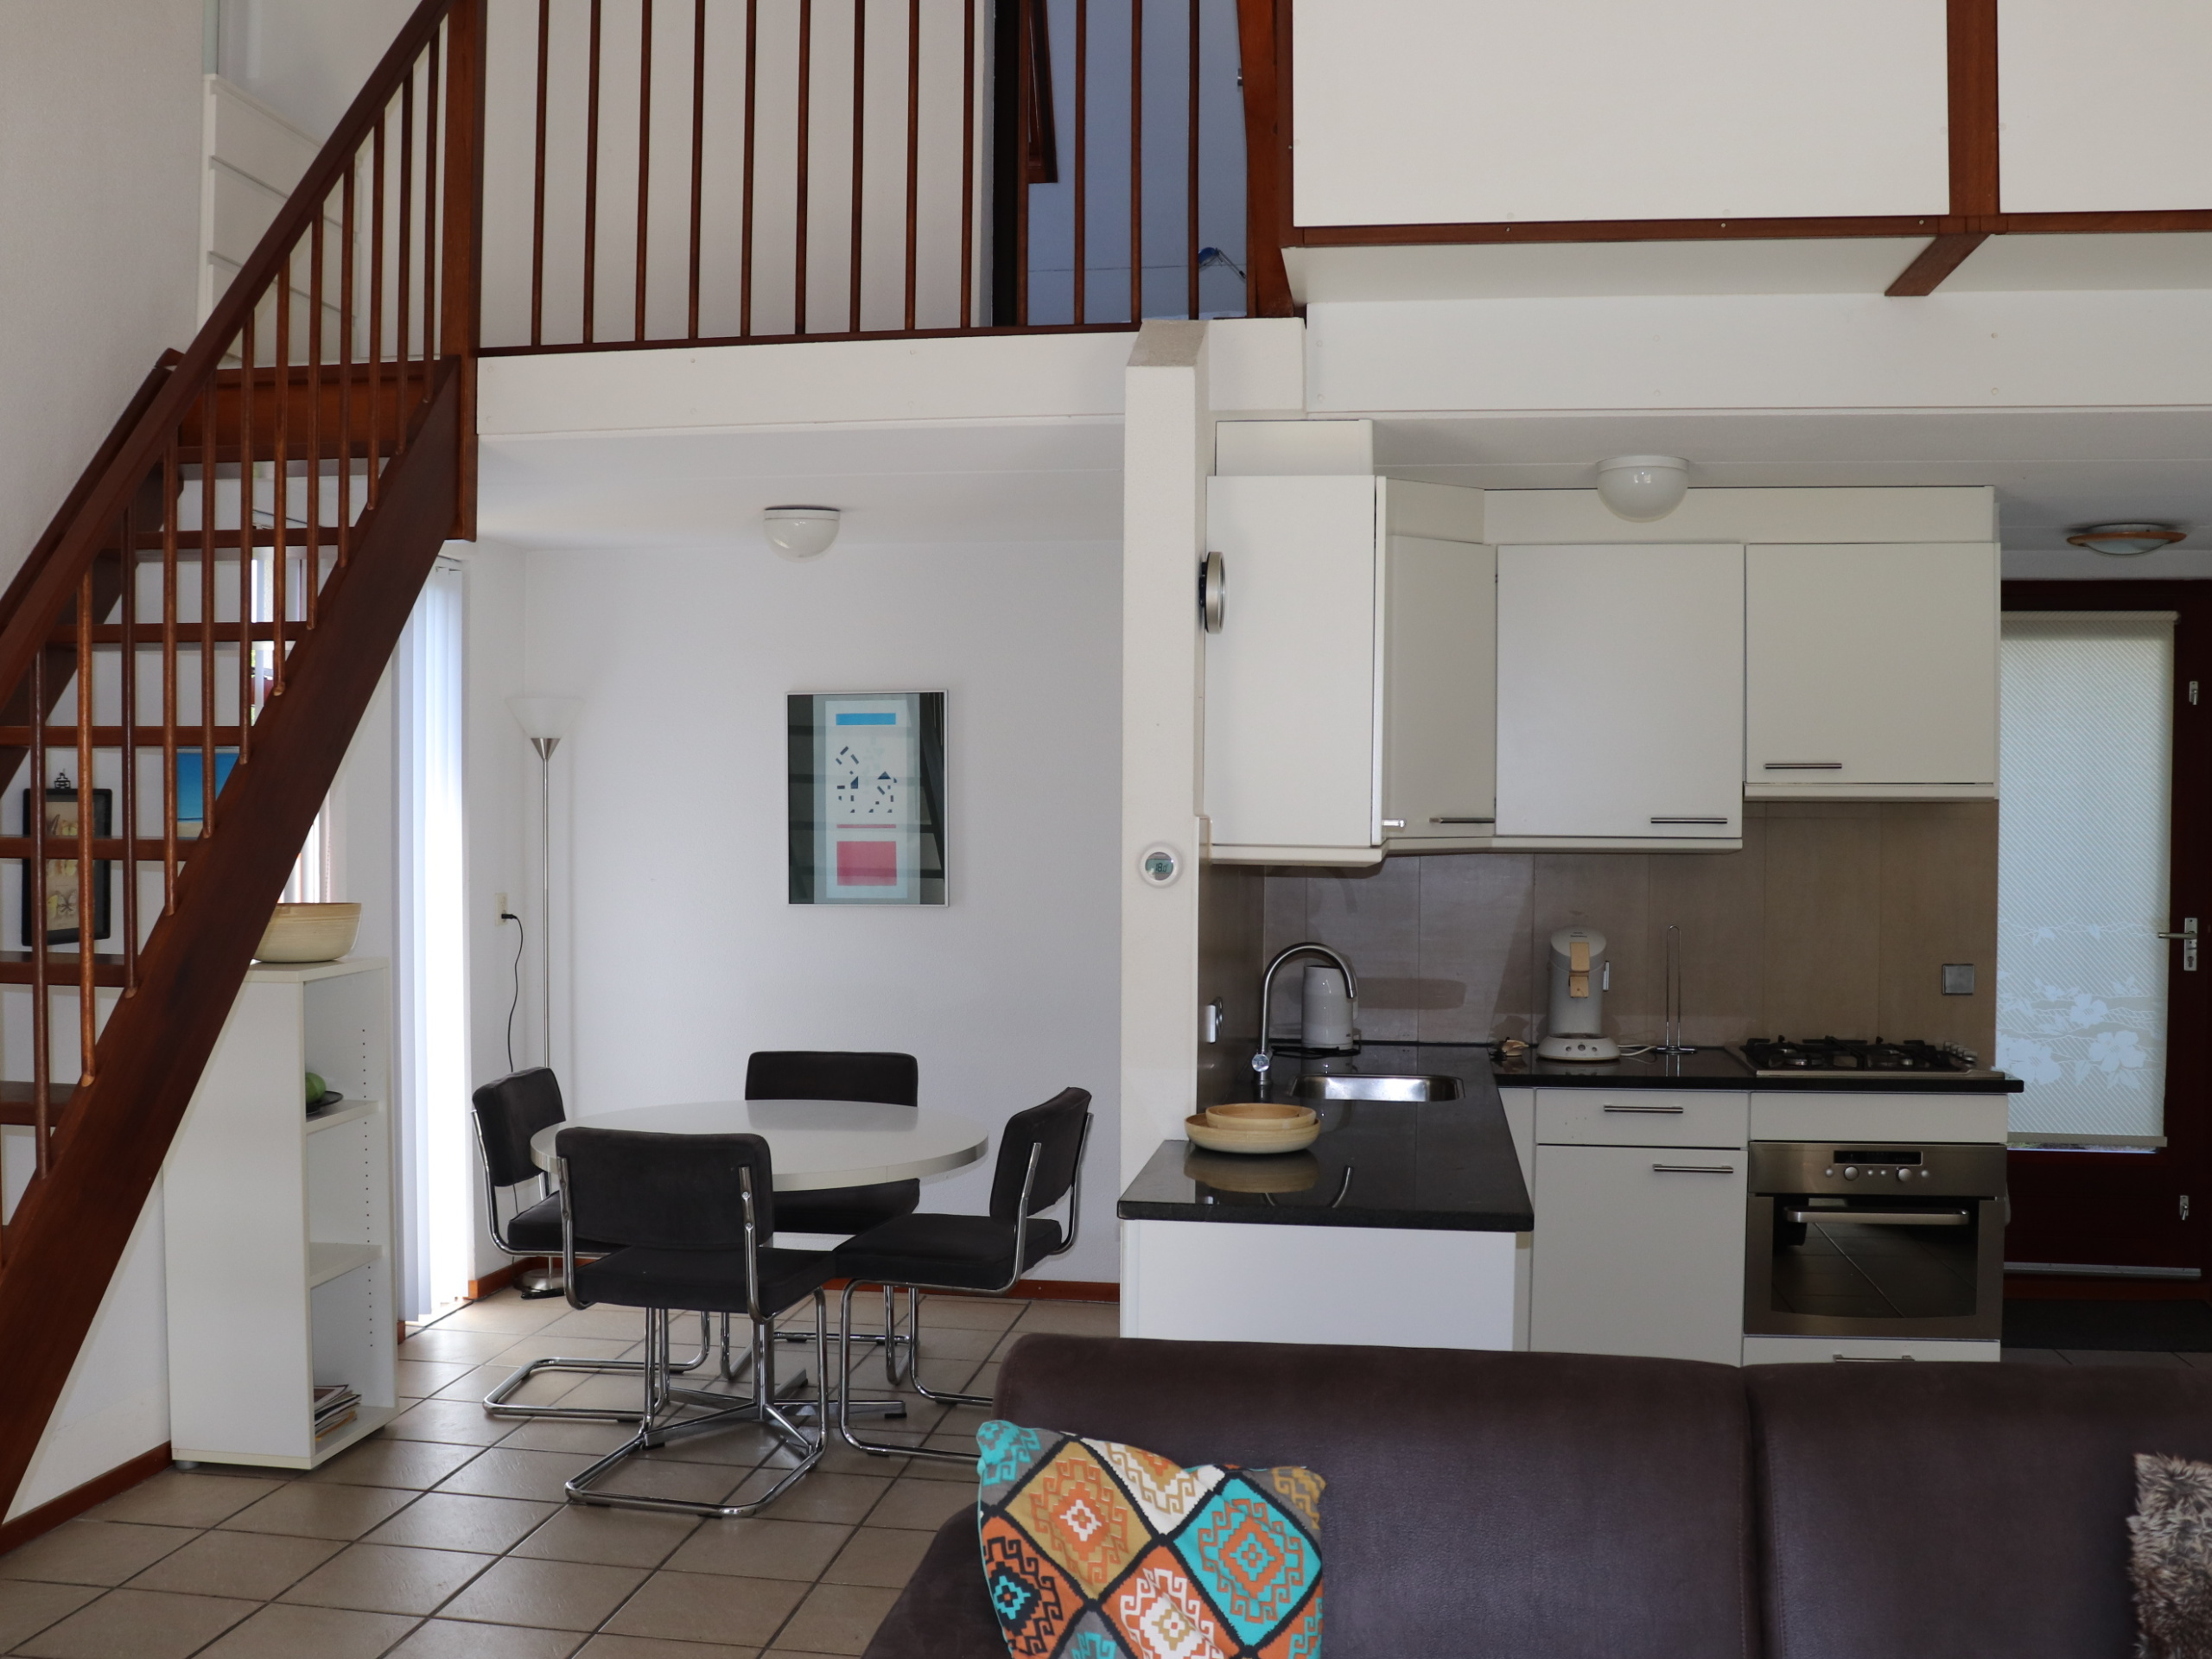 Spacious detached holiday home with great garden in forest De Dennen